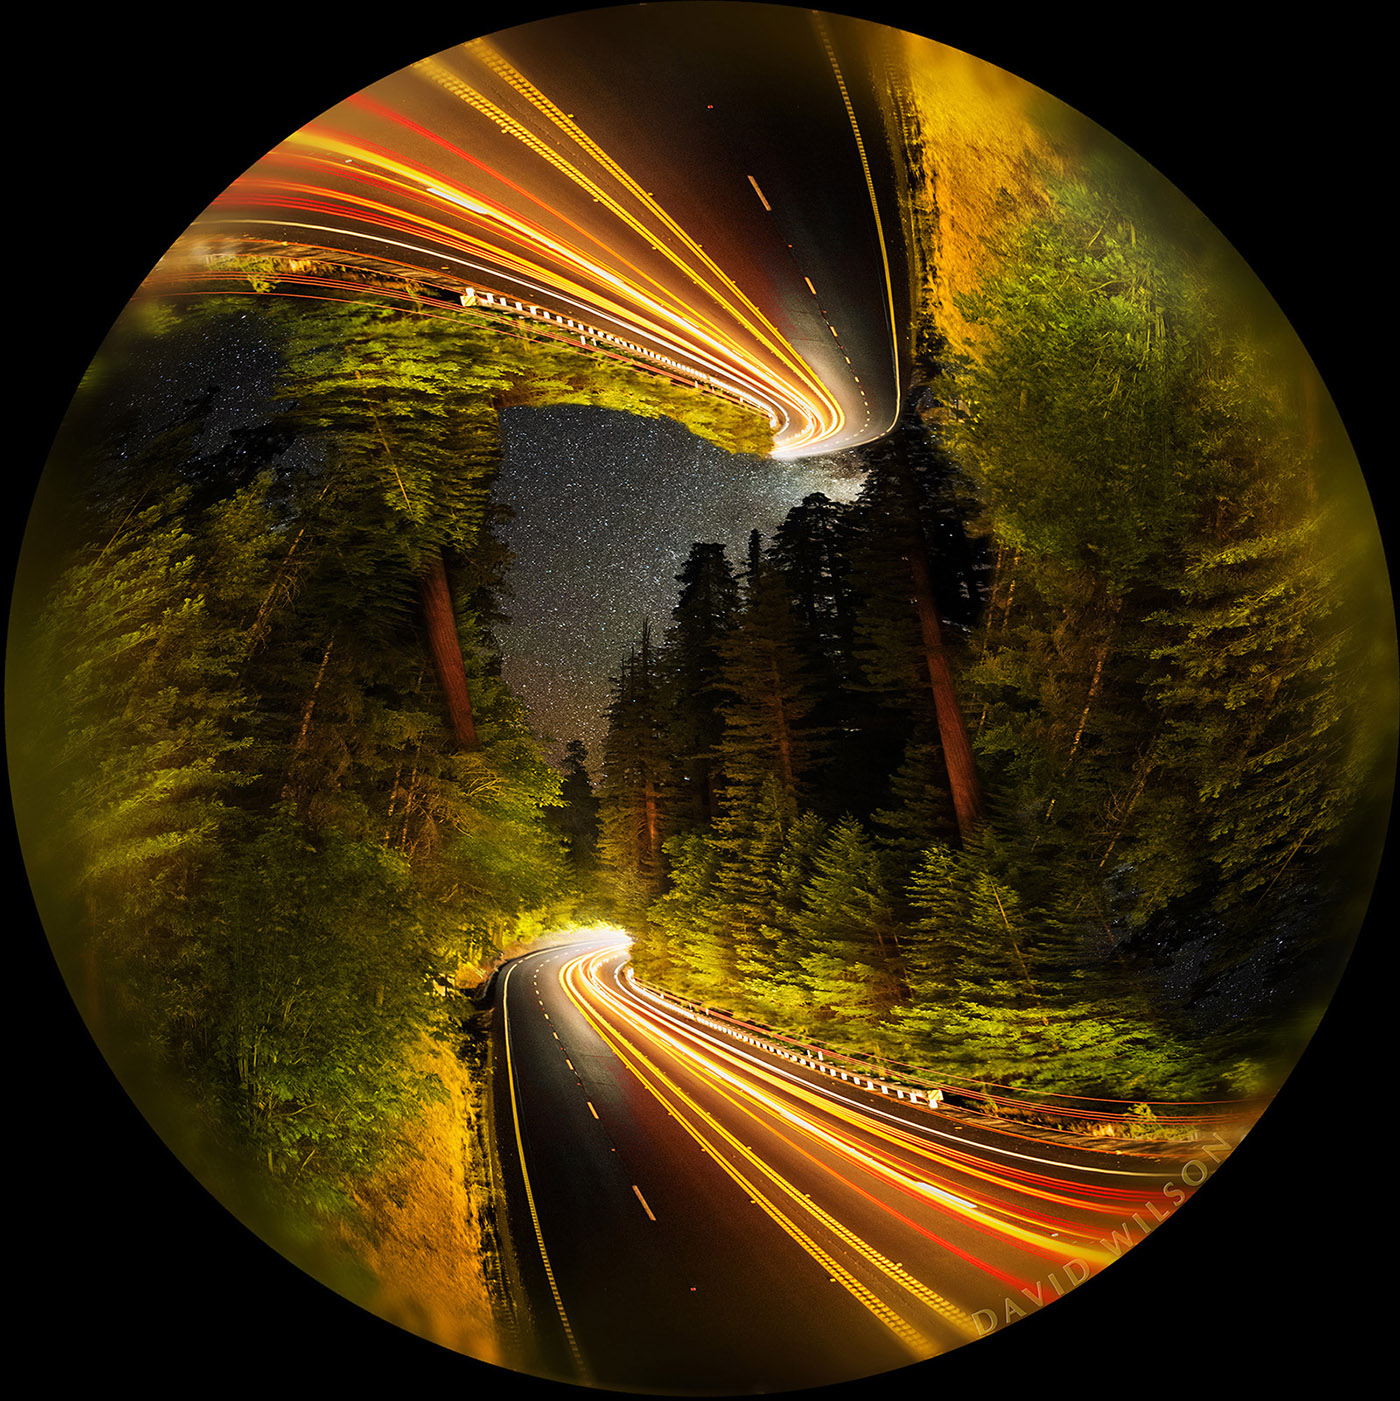 A para-symmetrical exercise created from a nighttime image along US 101, the Redwood Highway.